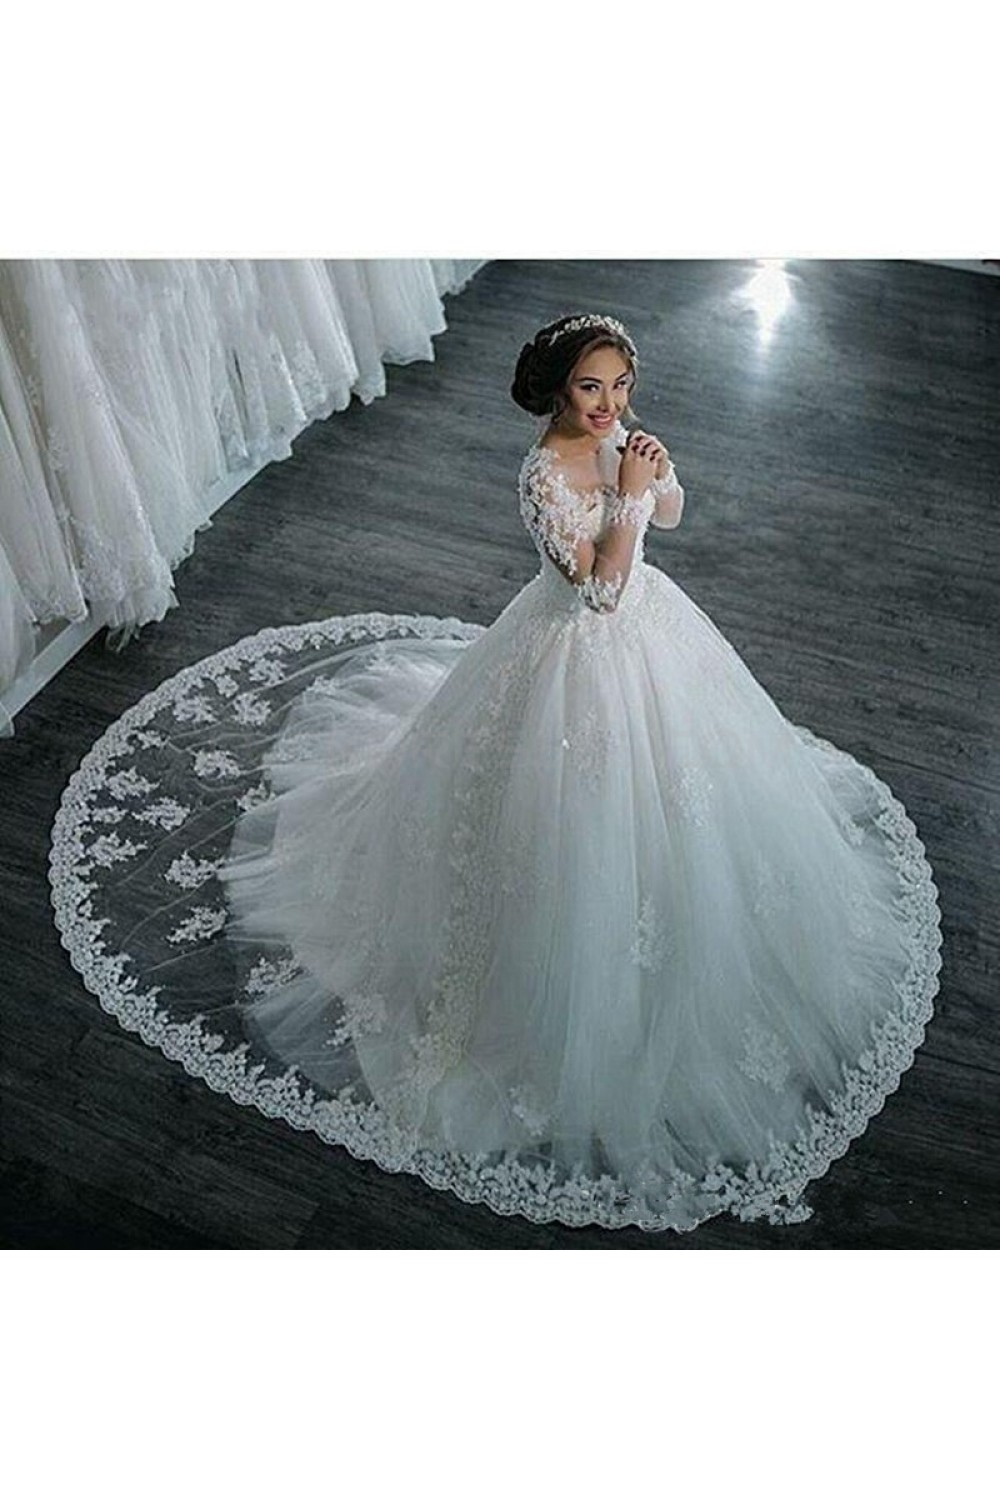 Long Sleeves Illusion Neckline Lace Wedding Dresses Bridal Gowns 3030214